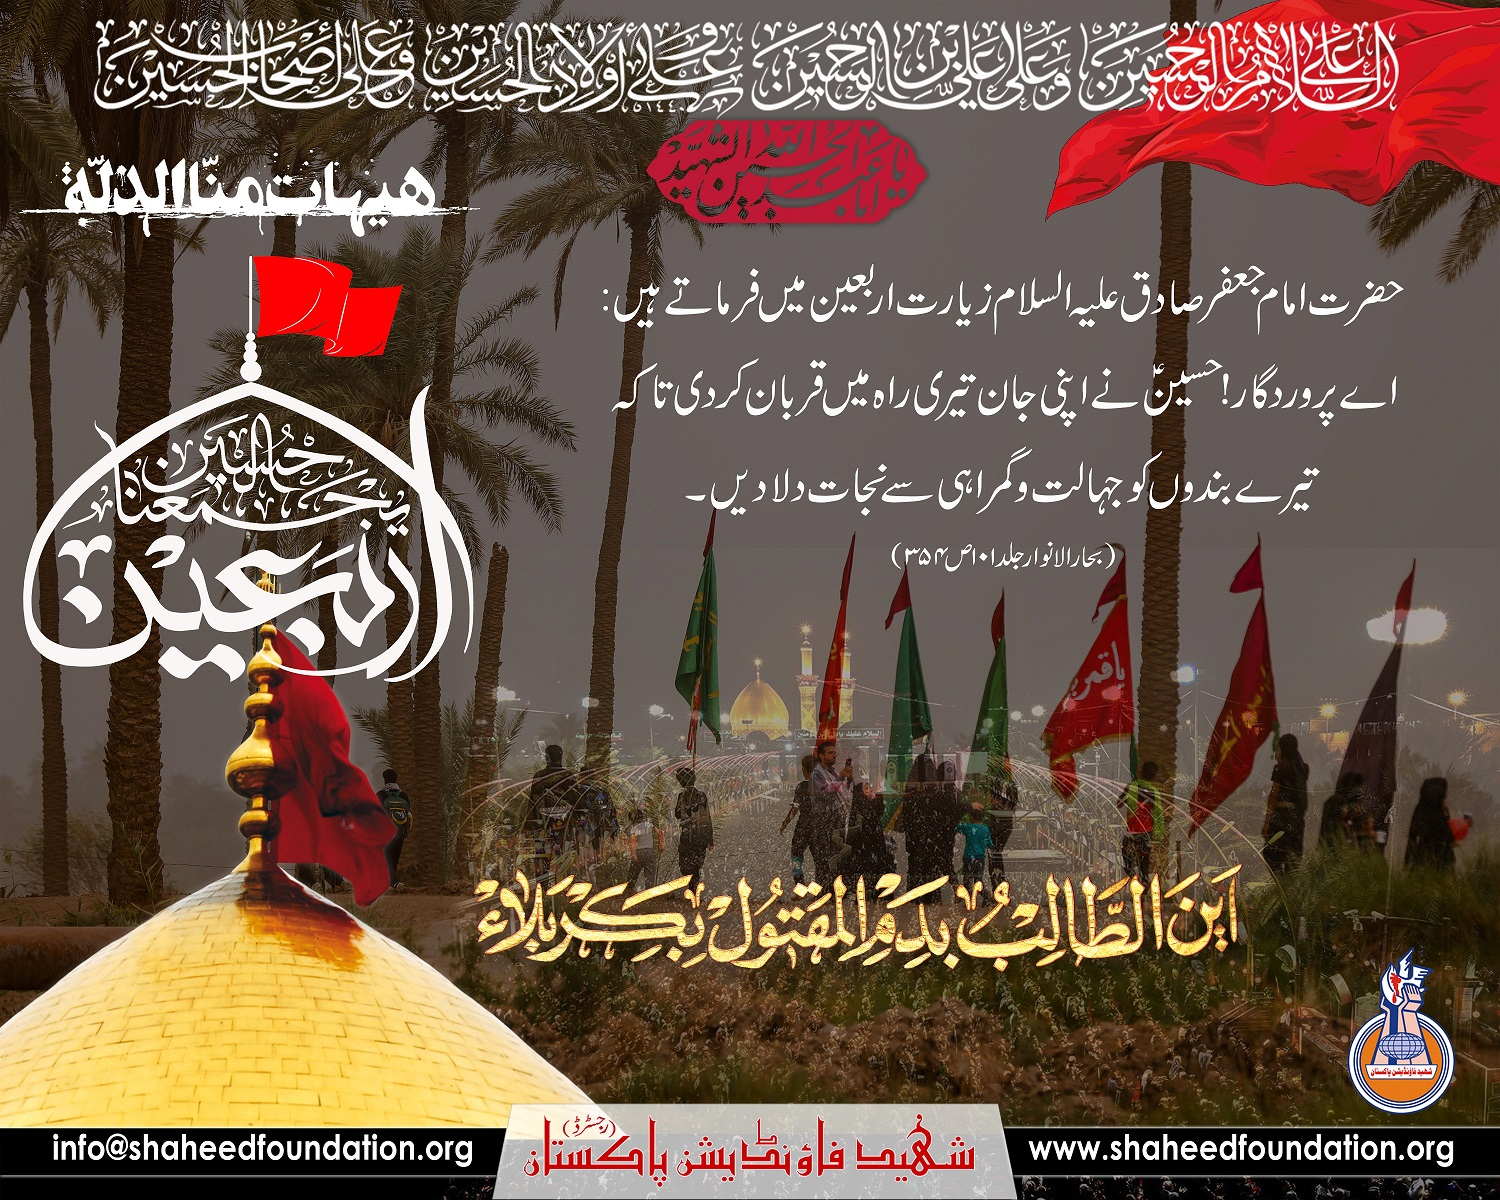 Arbaeen 2021: The 40th Day after the Martyrdom of Imam Hussain (A.S.)